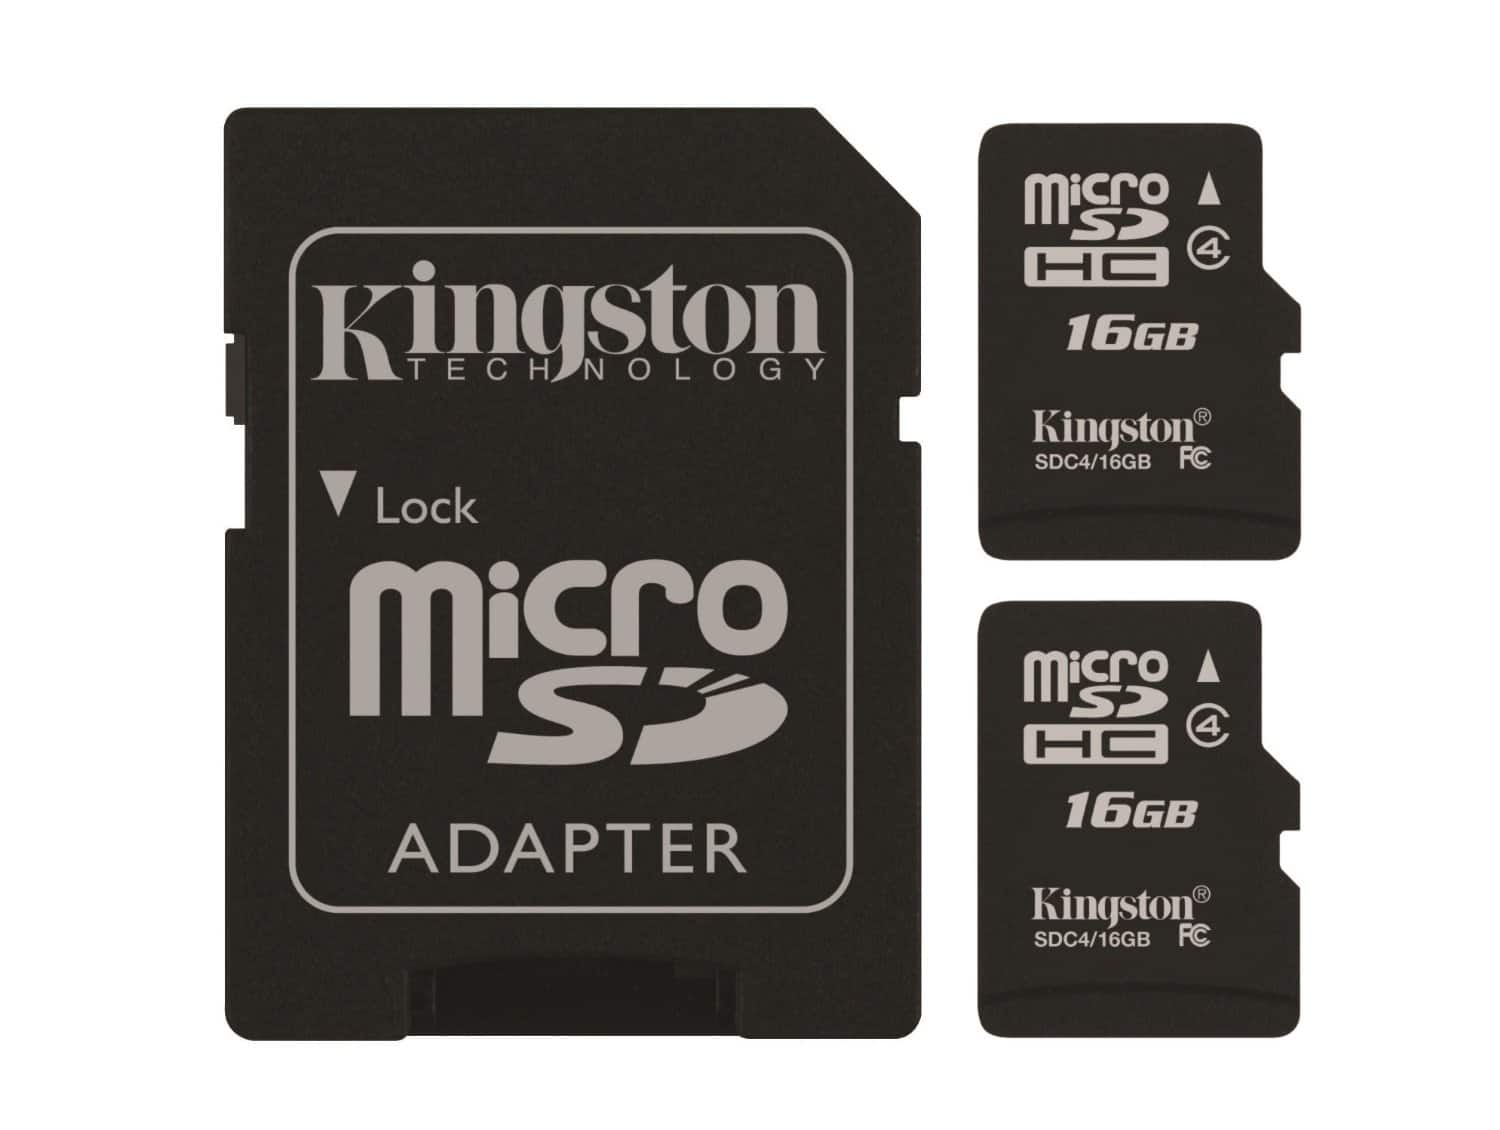 Prime Day Deal: Kingston Digital 16GB Micro SD Flash Card, Pack of 2, One Adapter with Jcase (SDC4/16GB-2P1AET) - $6.99 + Free Shipping